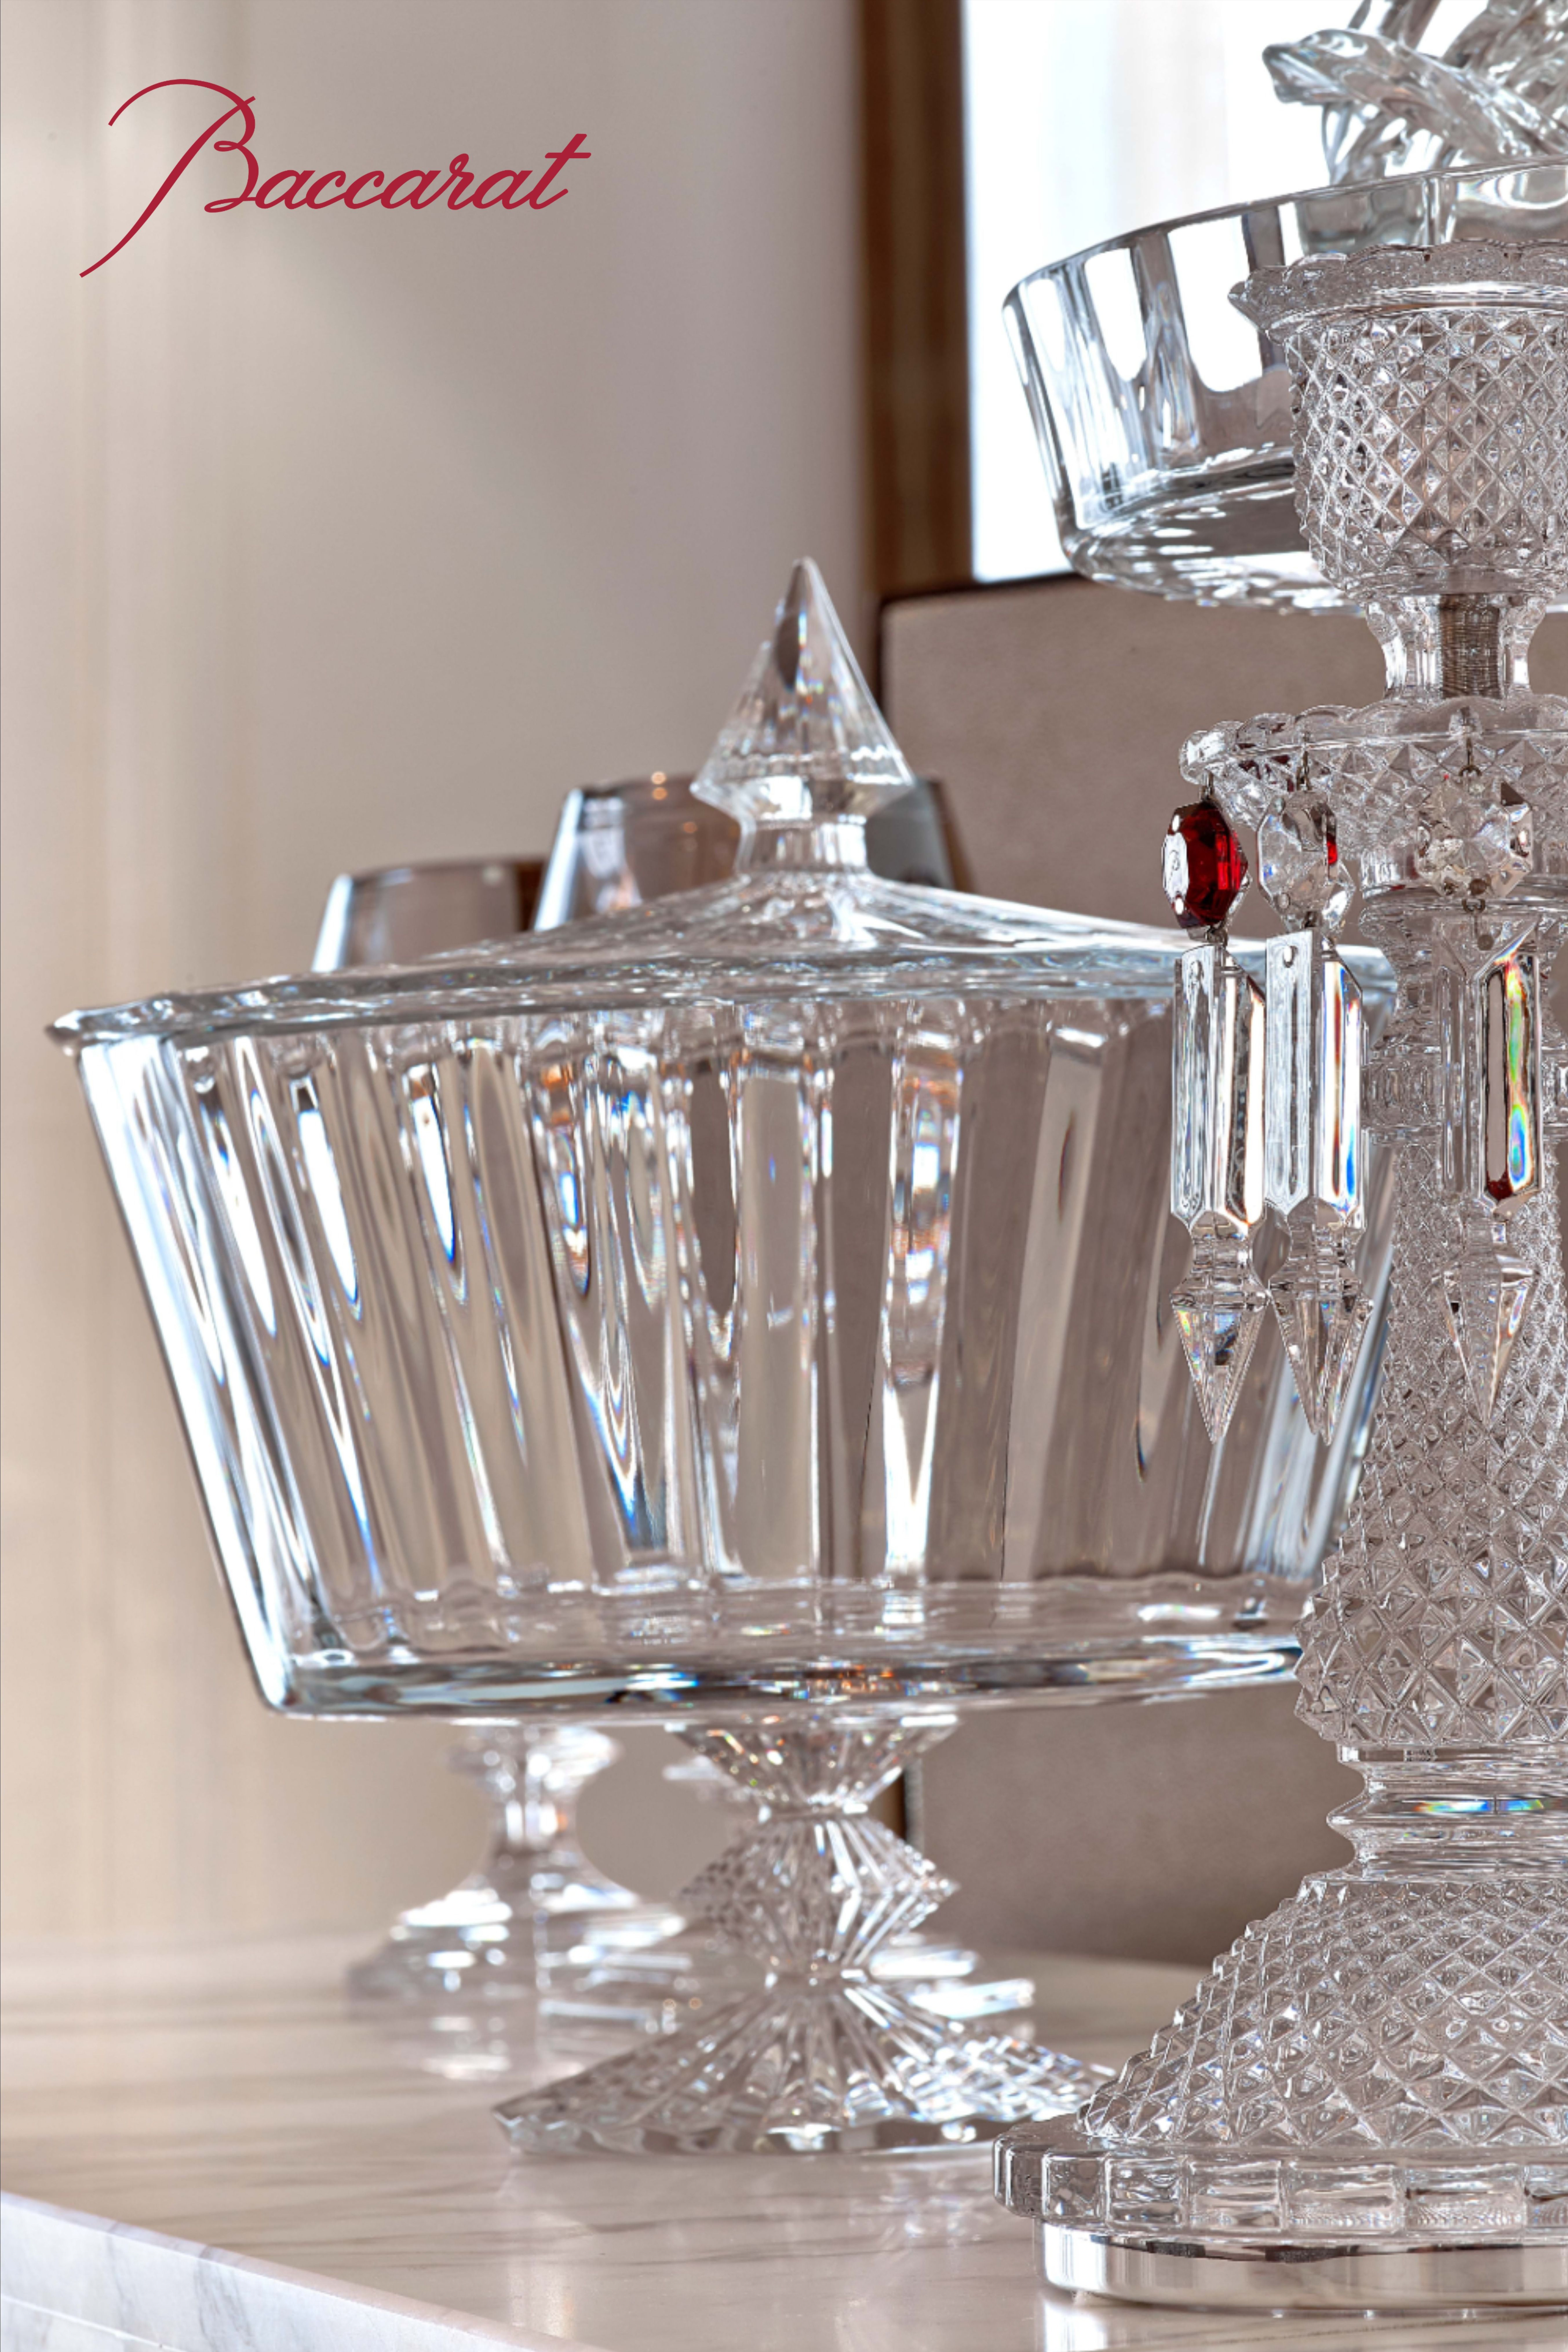 Mille Nuits Candy Box In 2020 Baccarat Crystal Crystal Stemware